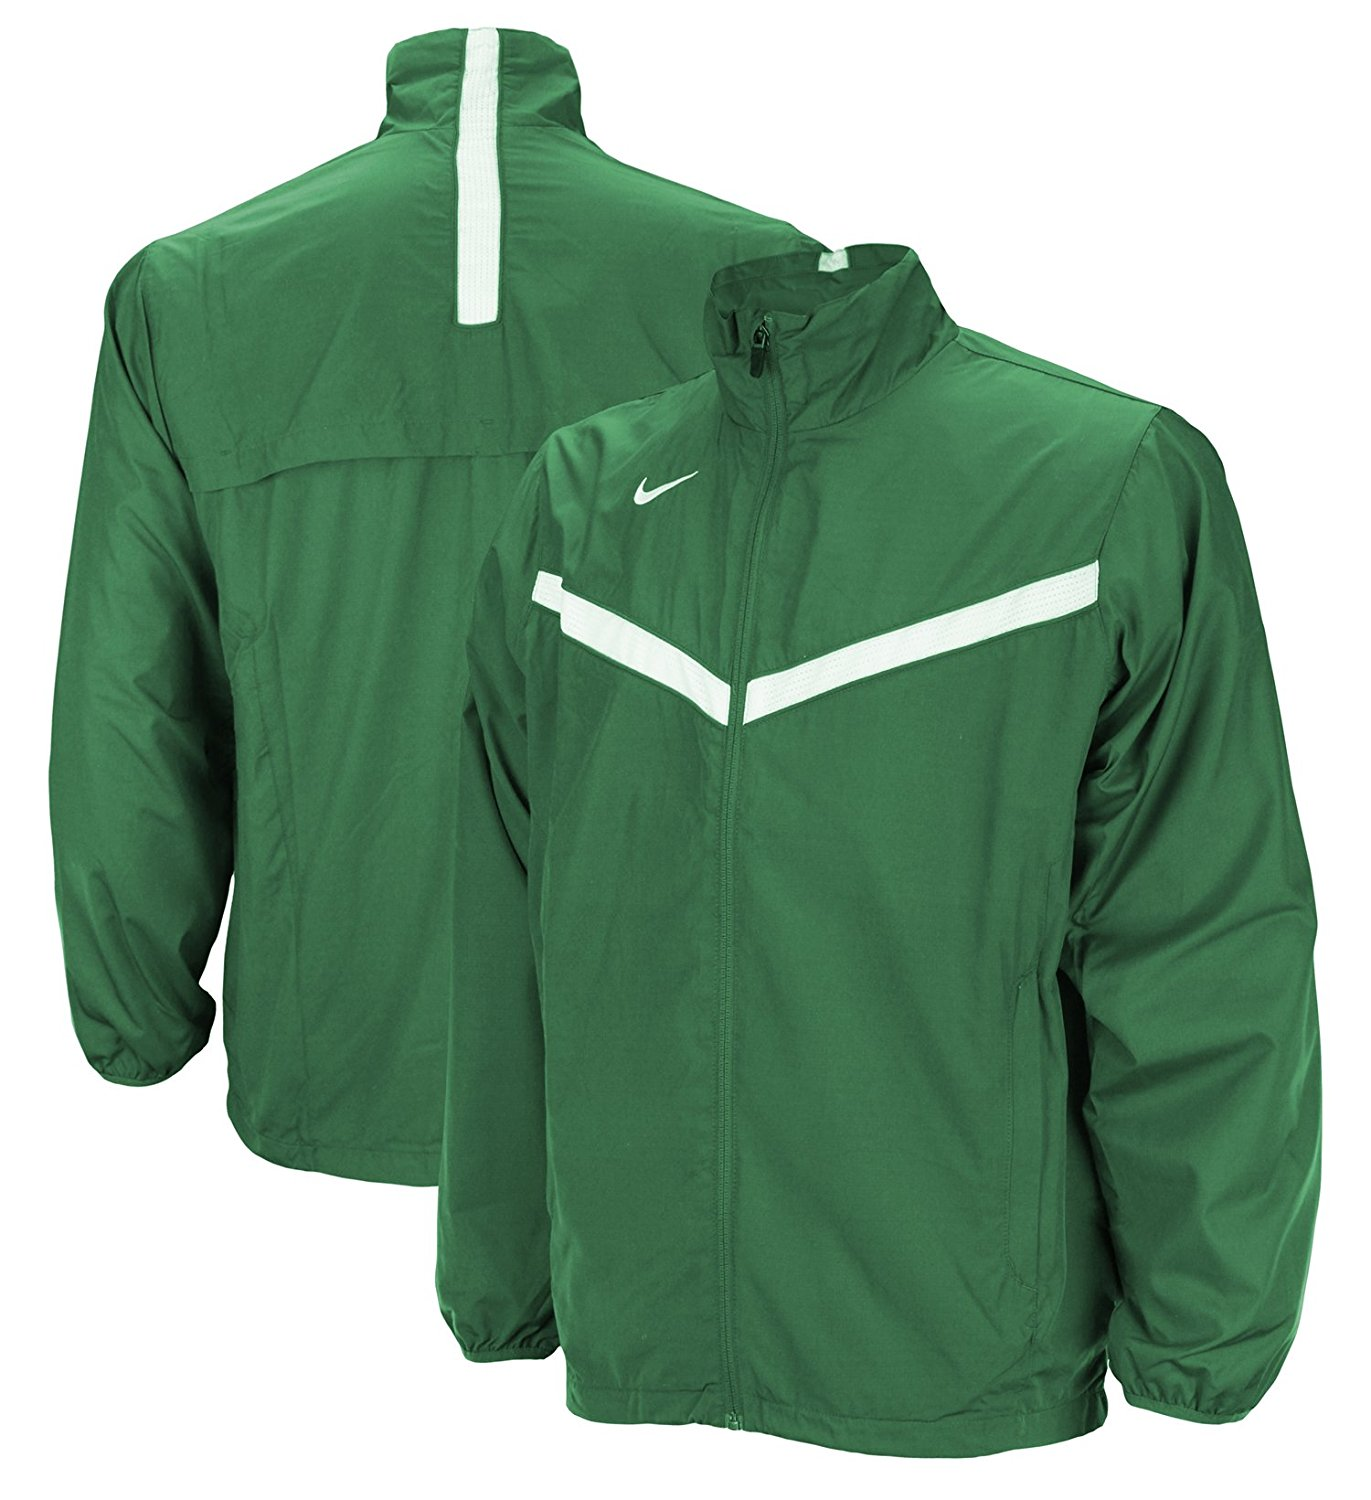 1a231792330 Nike Men s Championship III Warm-Up Jacket at Amazon Men s Clothing store